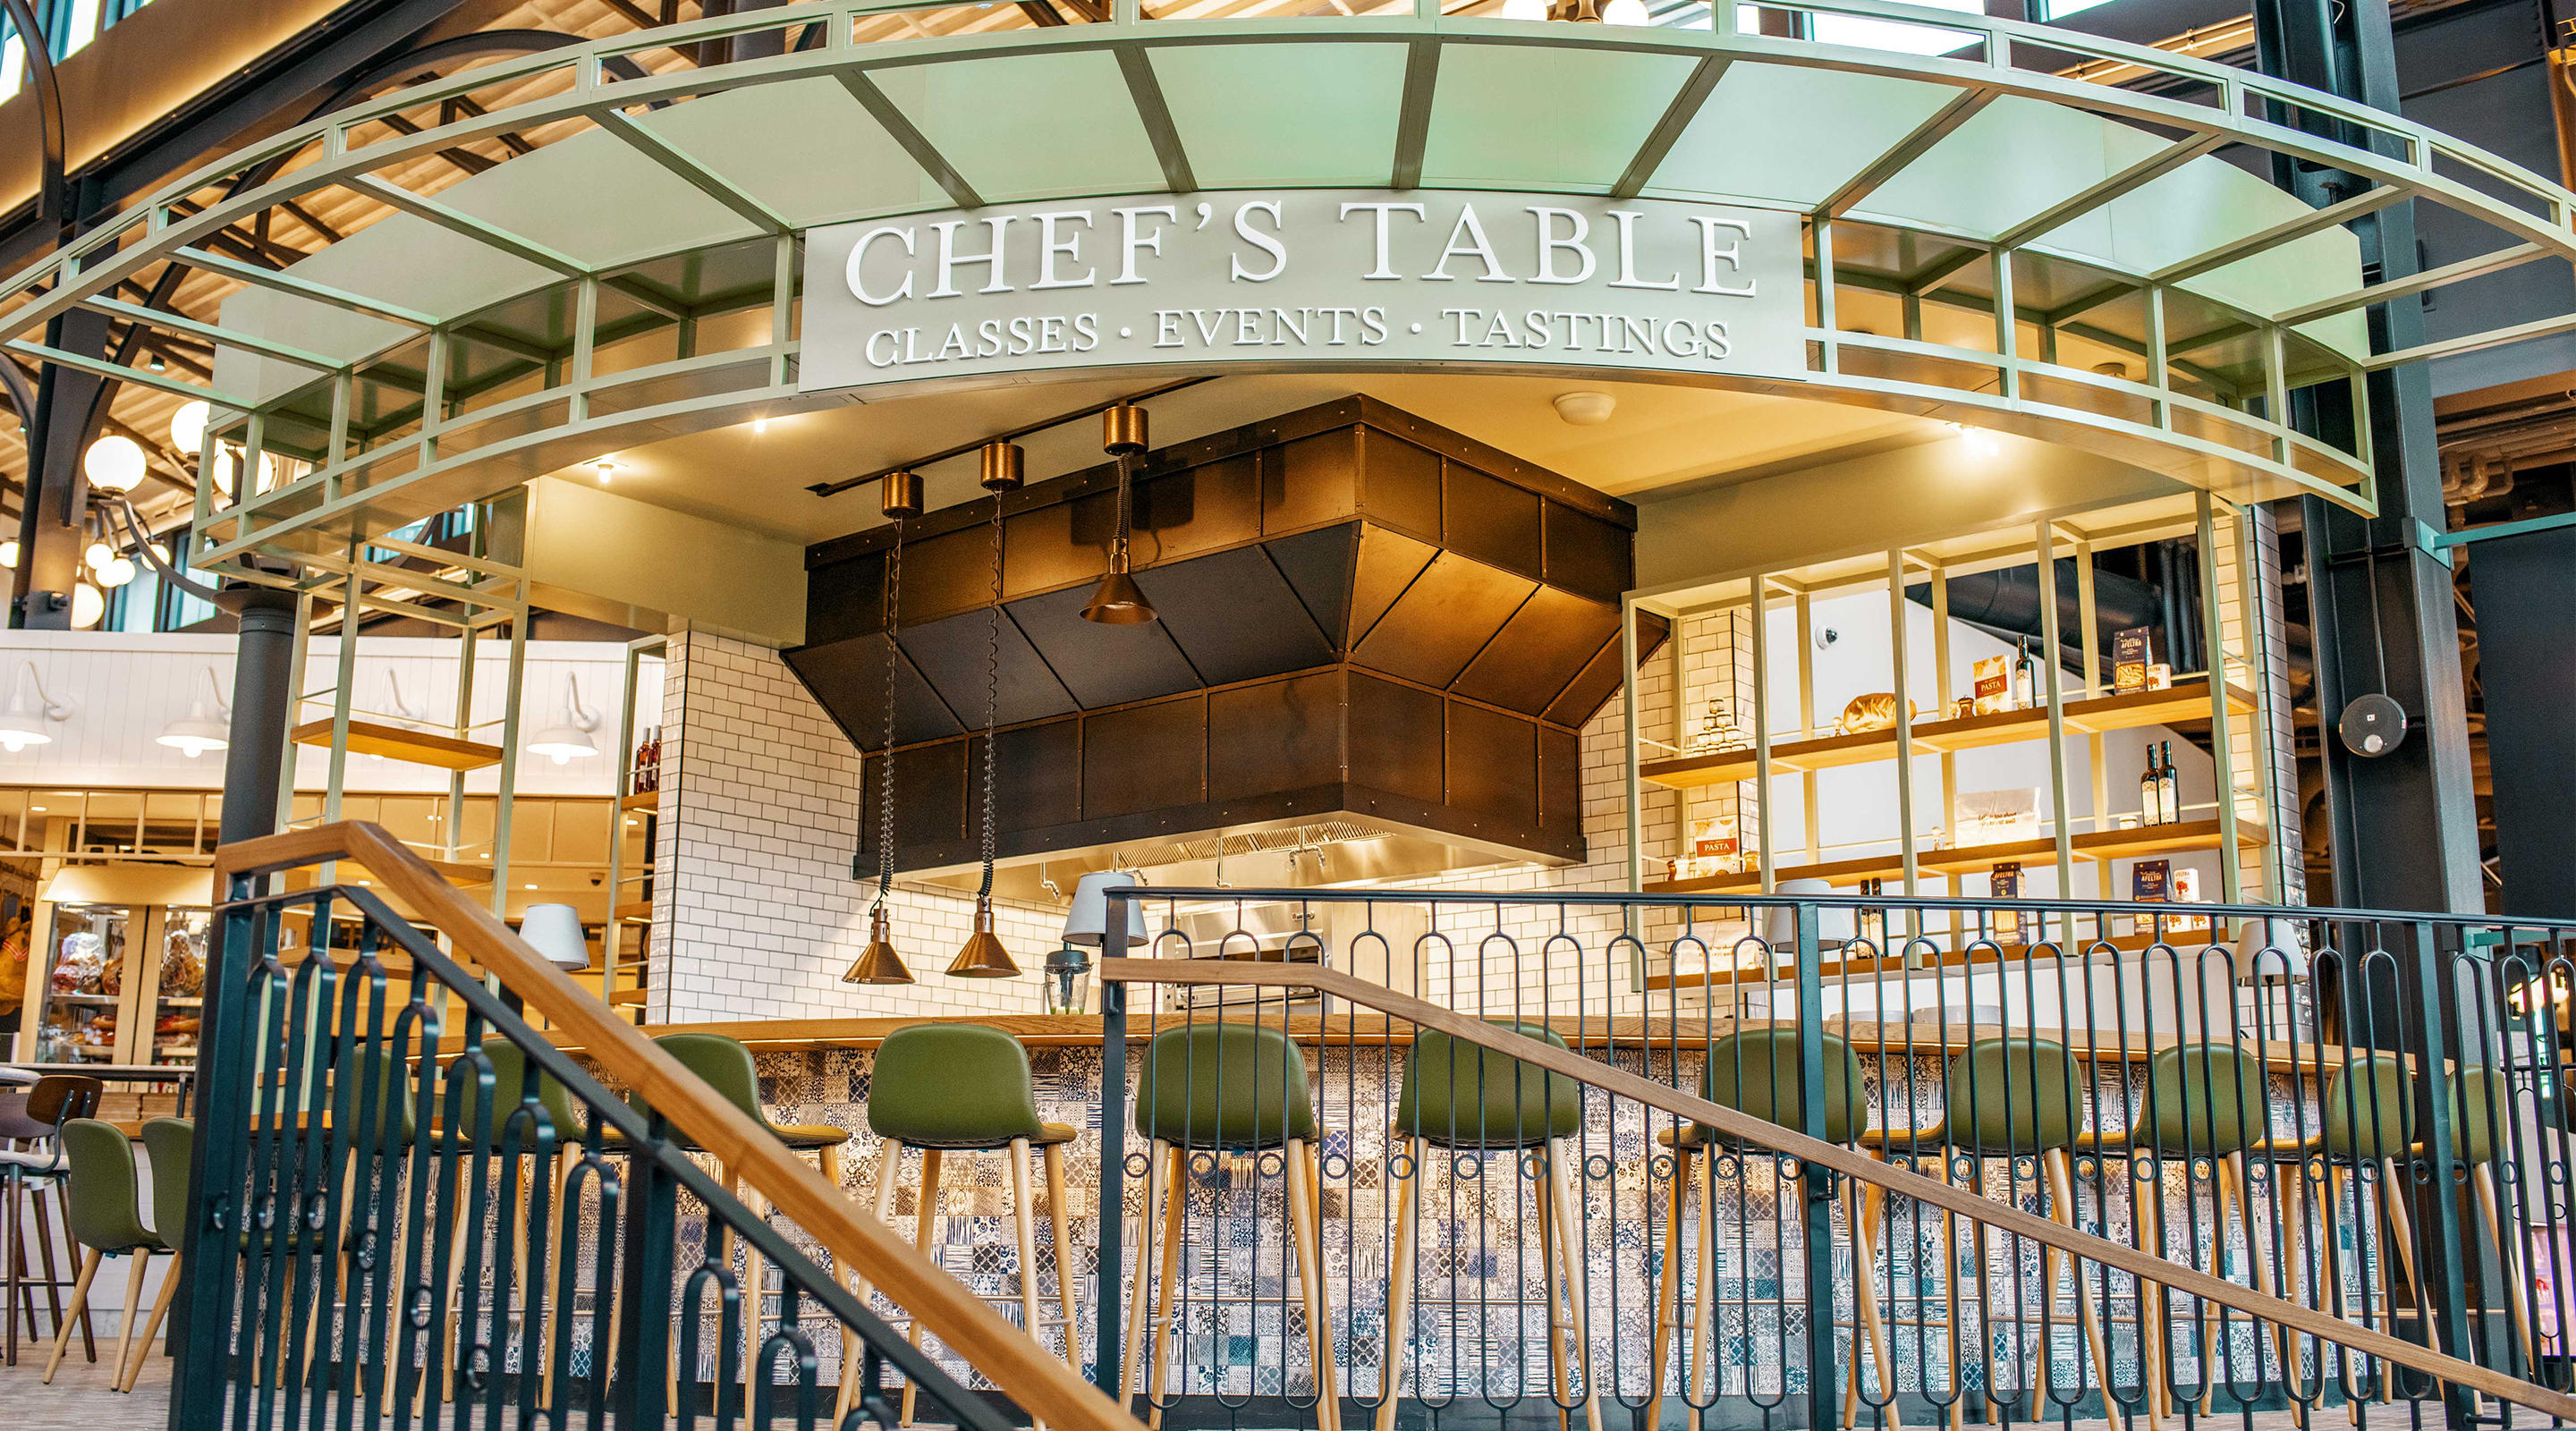 The entrance to Chef's Table inside of Eatalay at Park MGM.